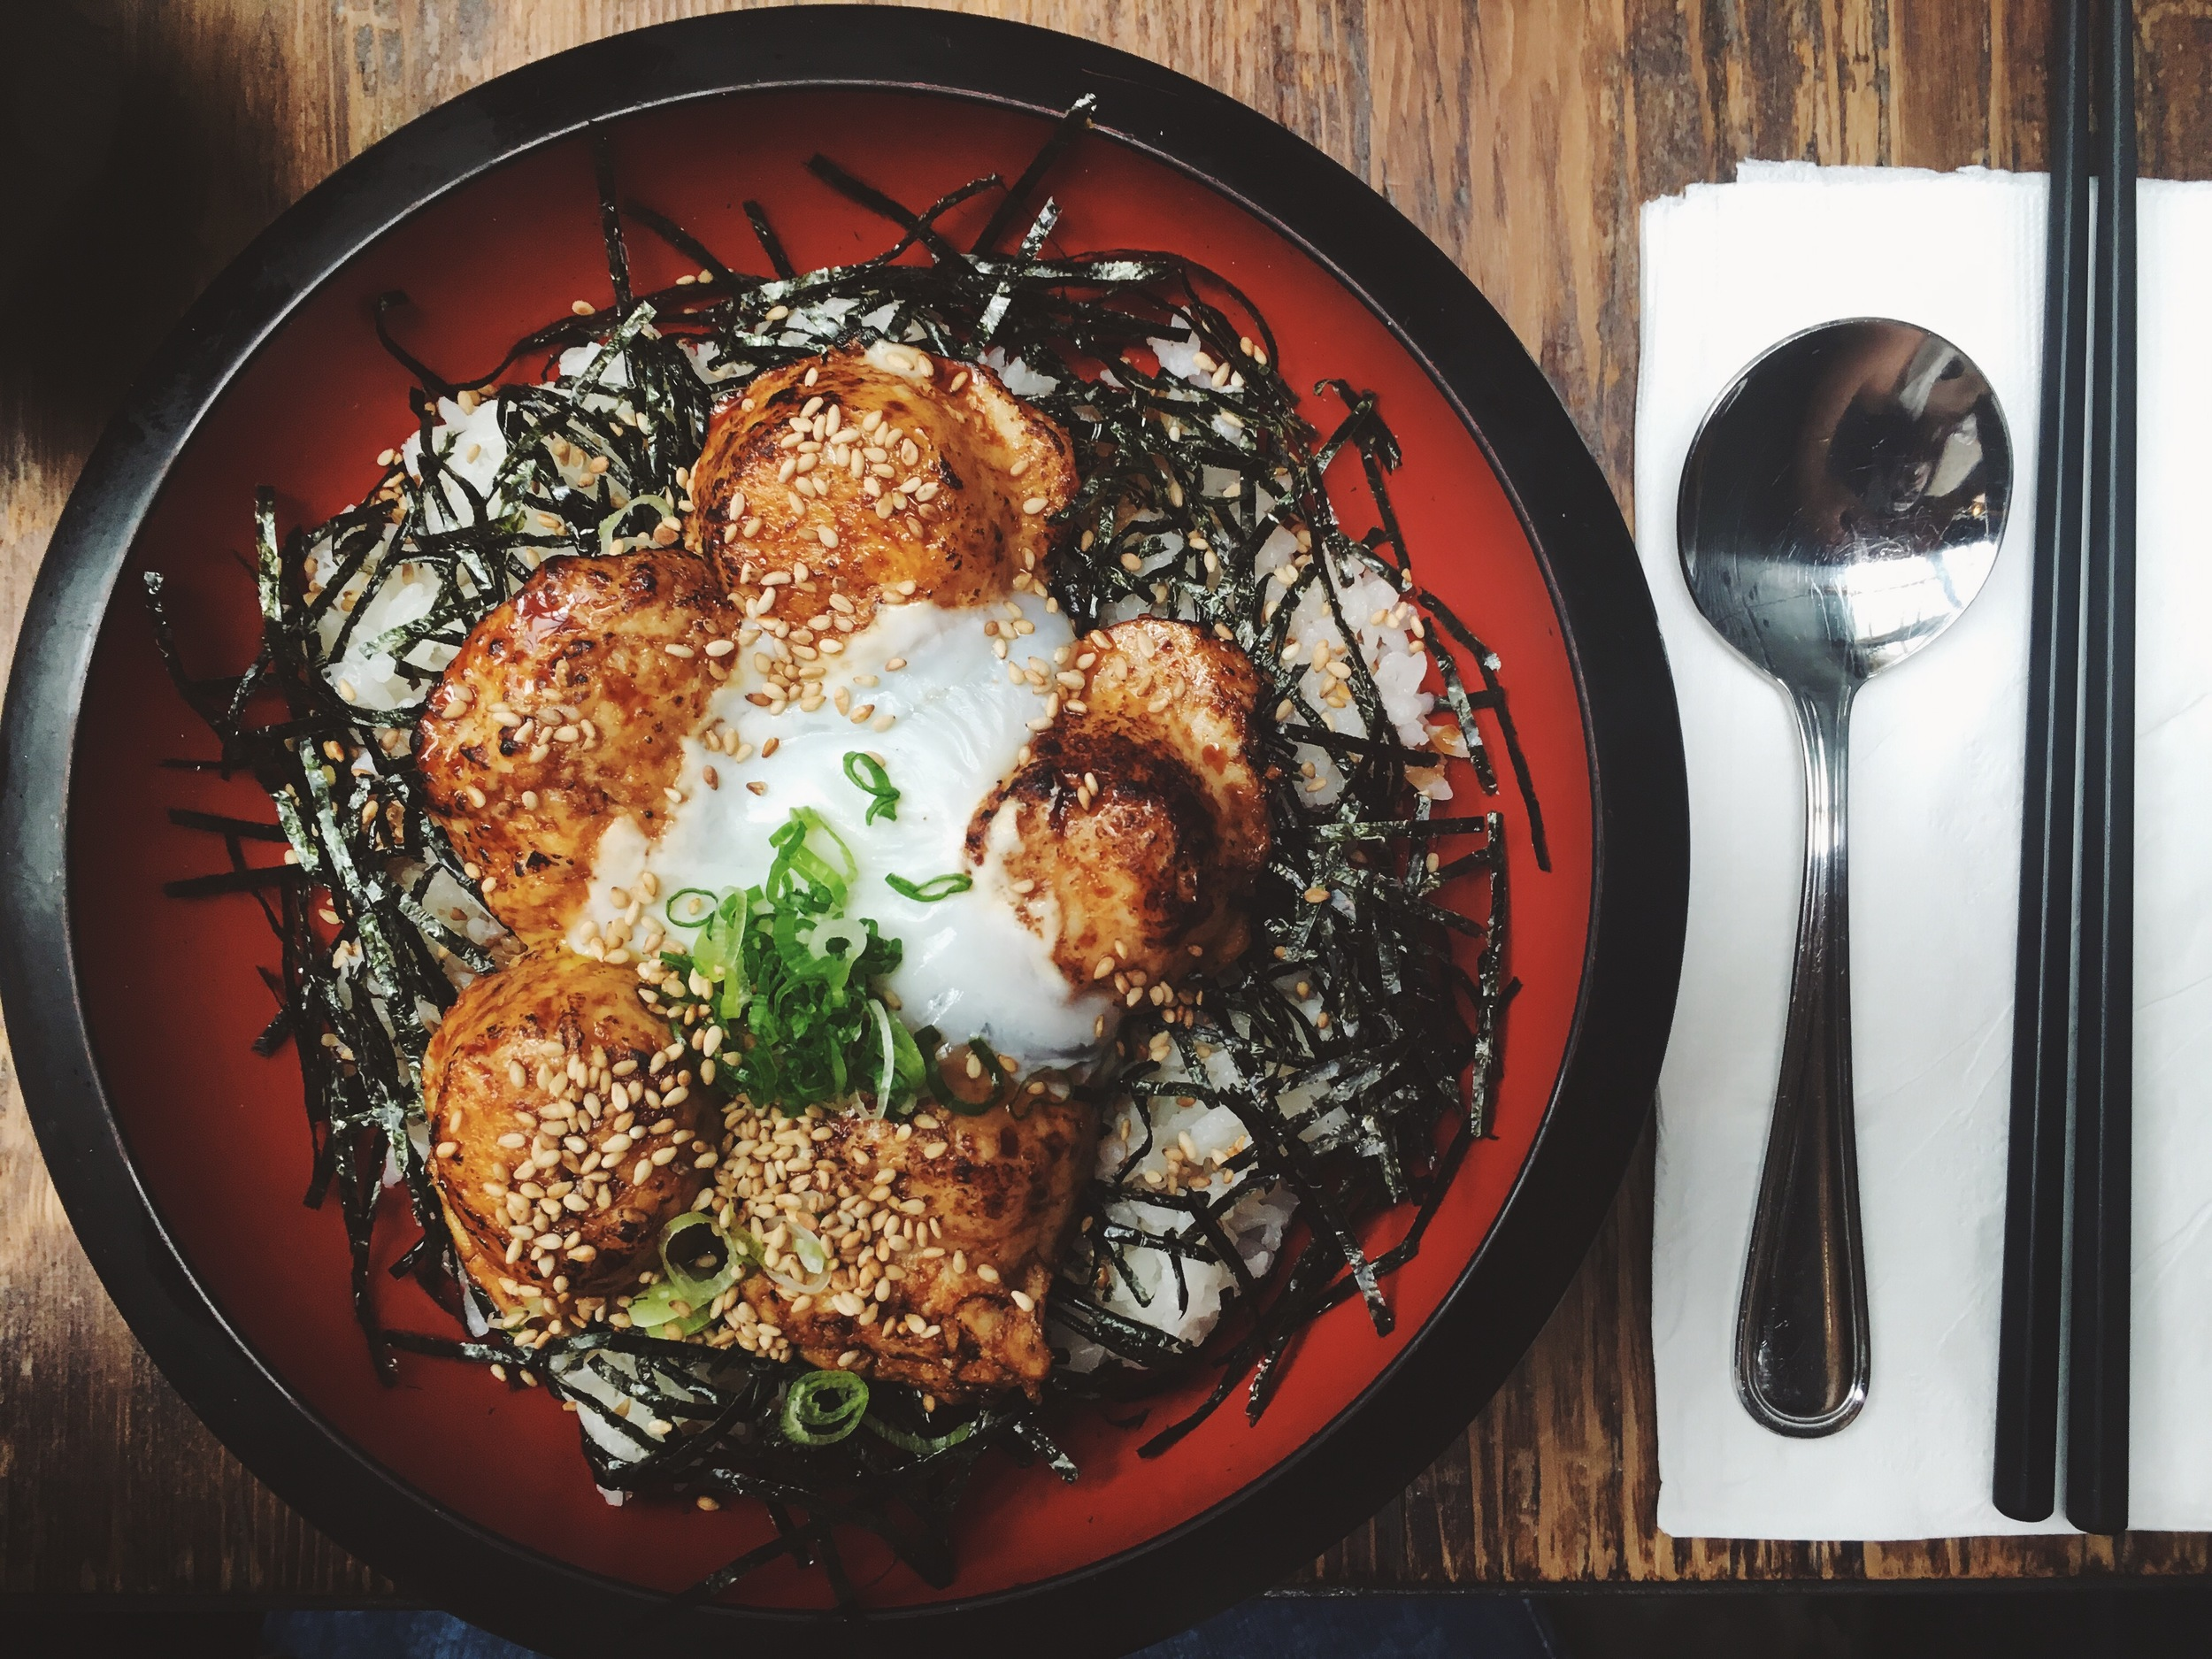 """Tsukune Don""   - Japanese chicken meatball with teriyaki sauce, nori, scallion, sesame, and soft egg over rice, served with miso soup at   House of Small Wonder"